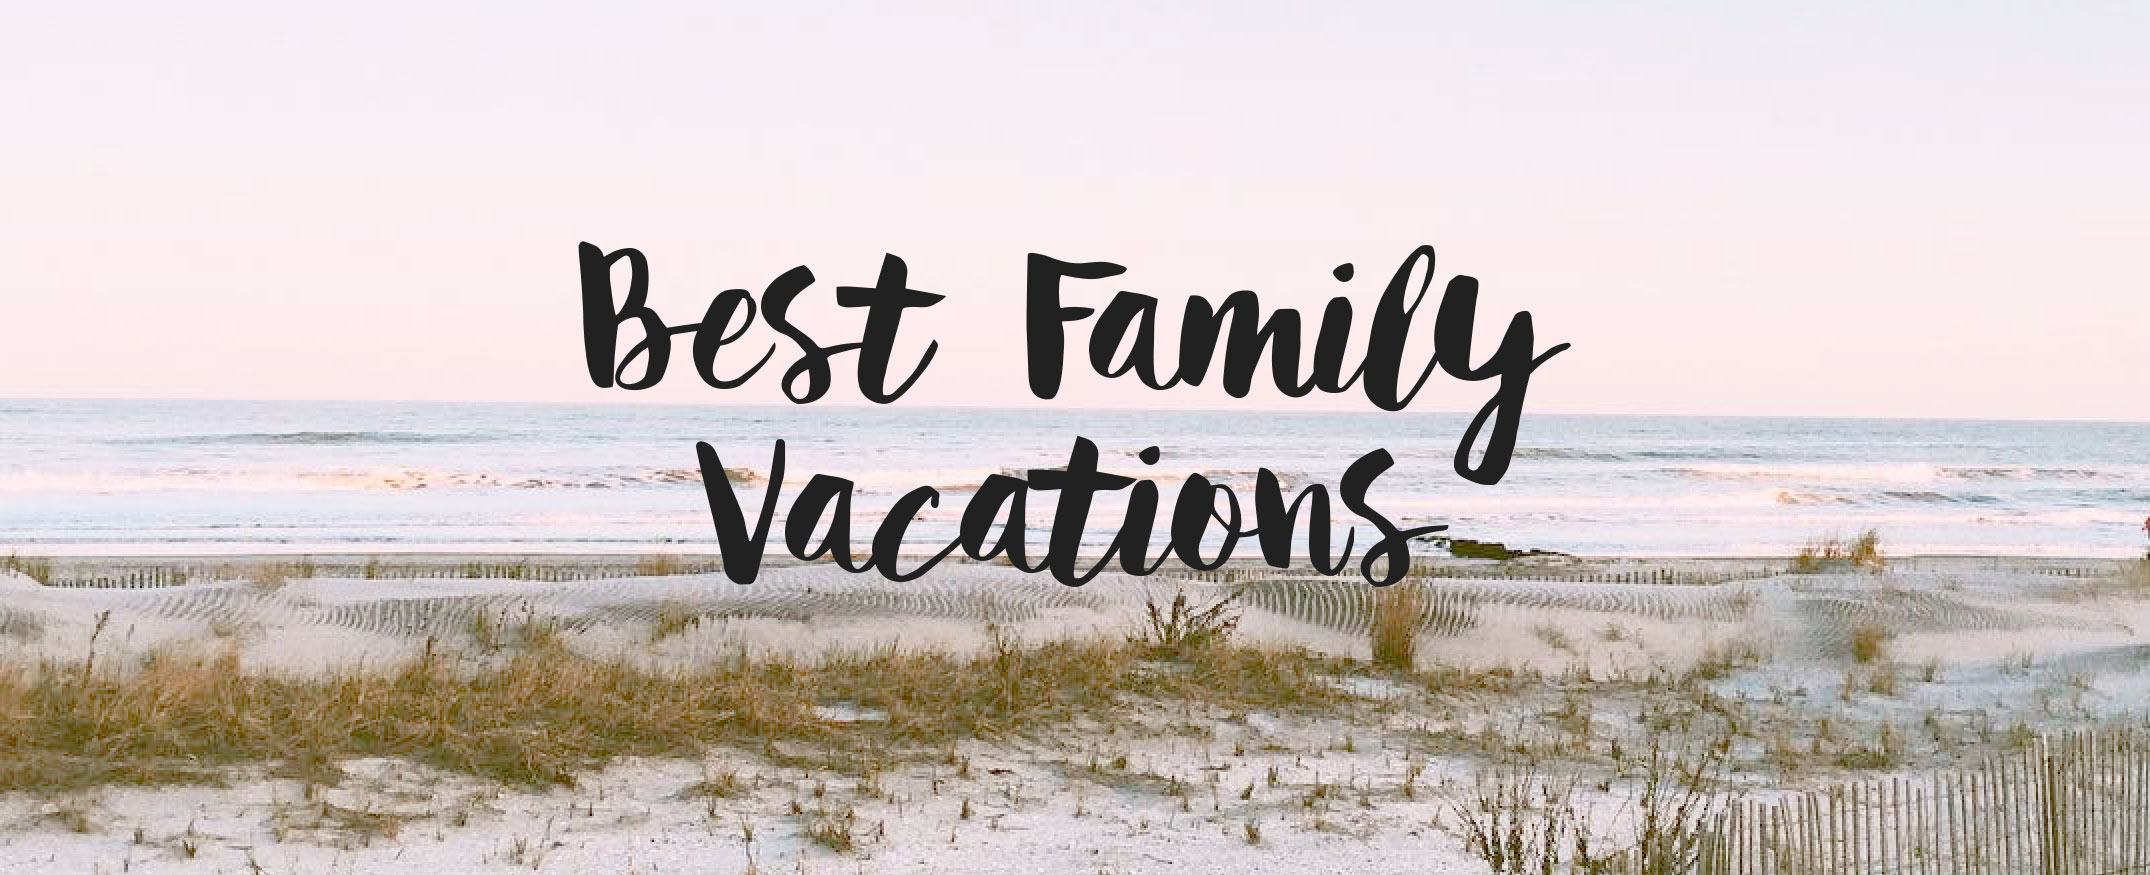 Best Place For Family Vacation Ocean City Nj